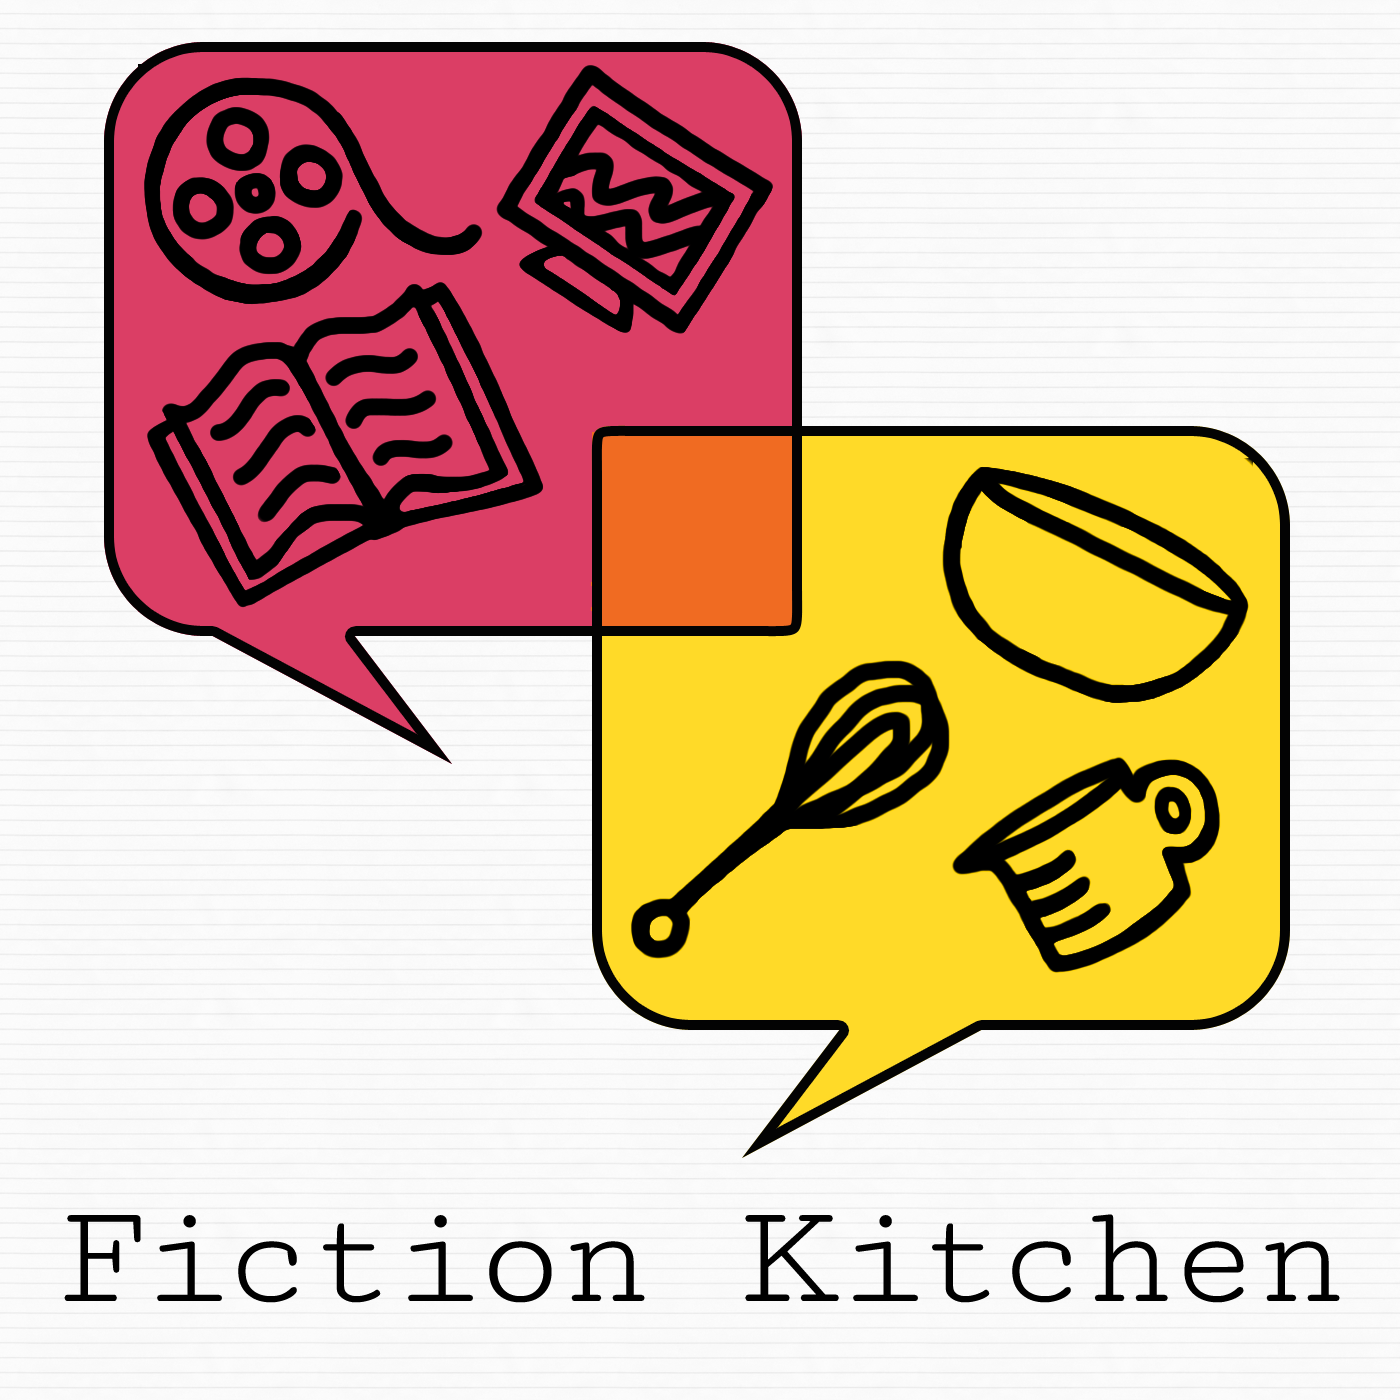 Fiction Kitchen: Cooking from our favorite books, movies, and TV!